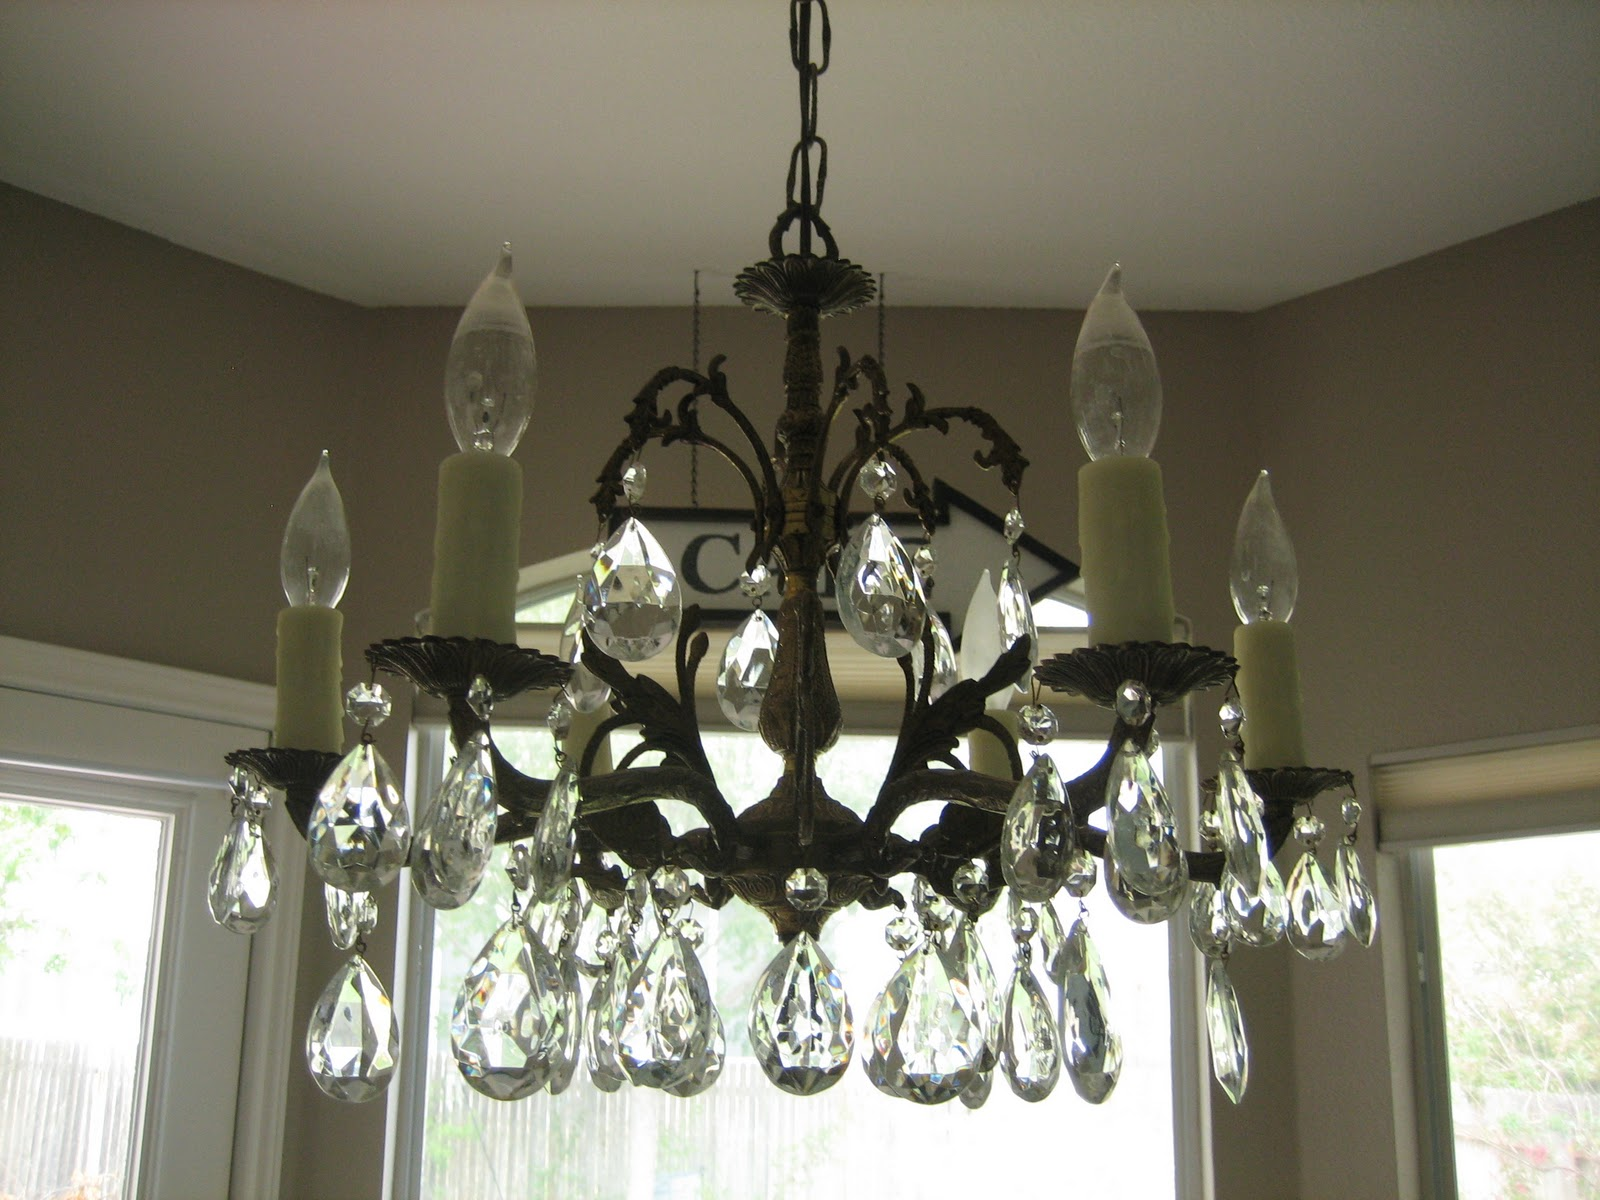 How to Install a Chandelier Charming Zebra